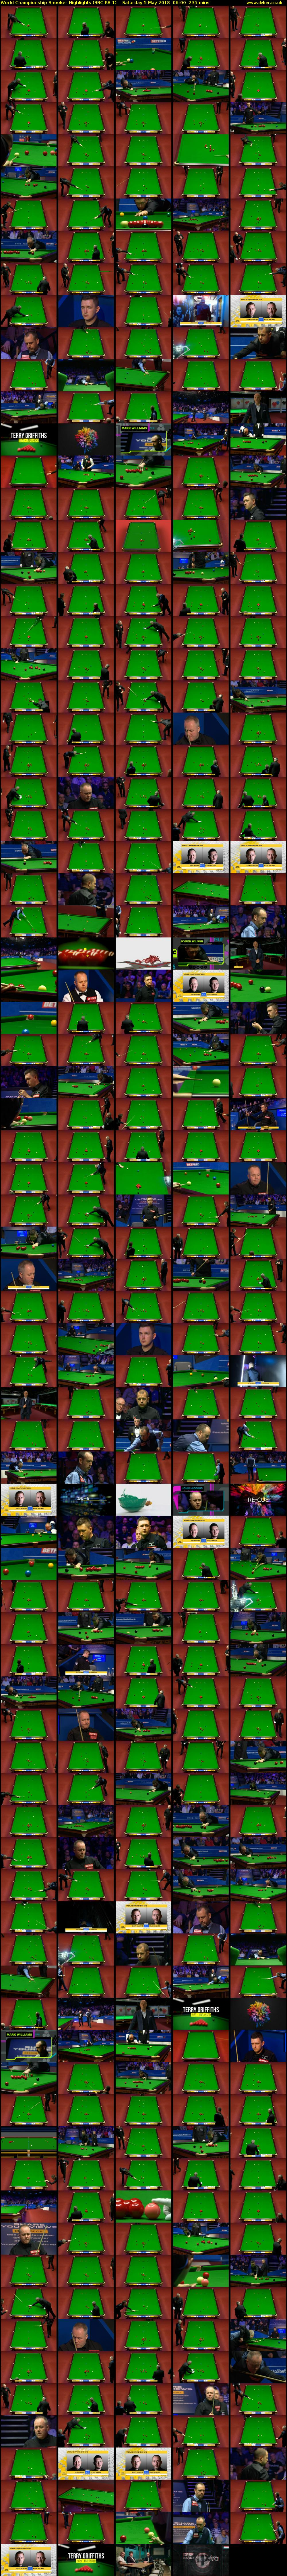 World Championship Snooker Highlights (BBC RB 1) Saturday 5 May 2018 06:00 - 09:55